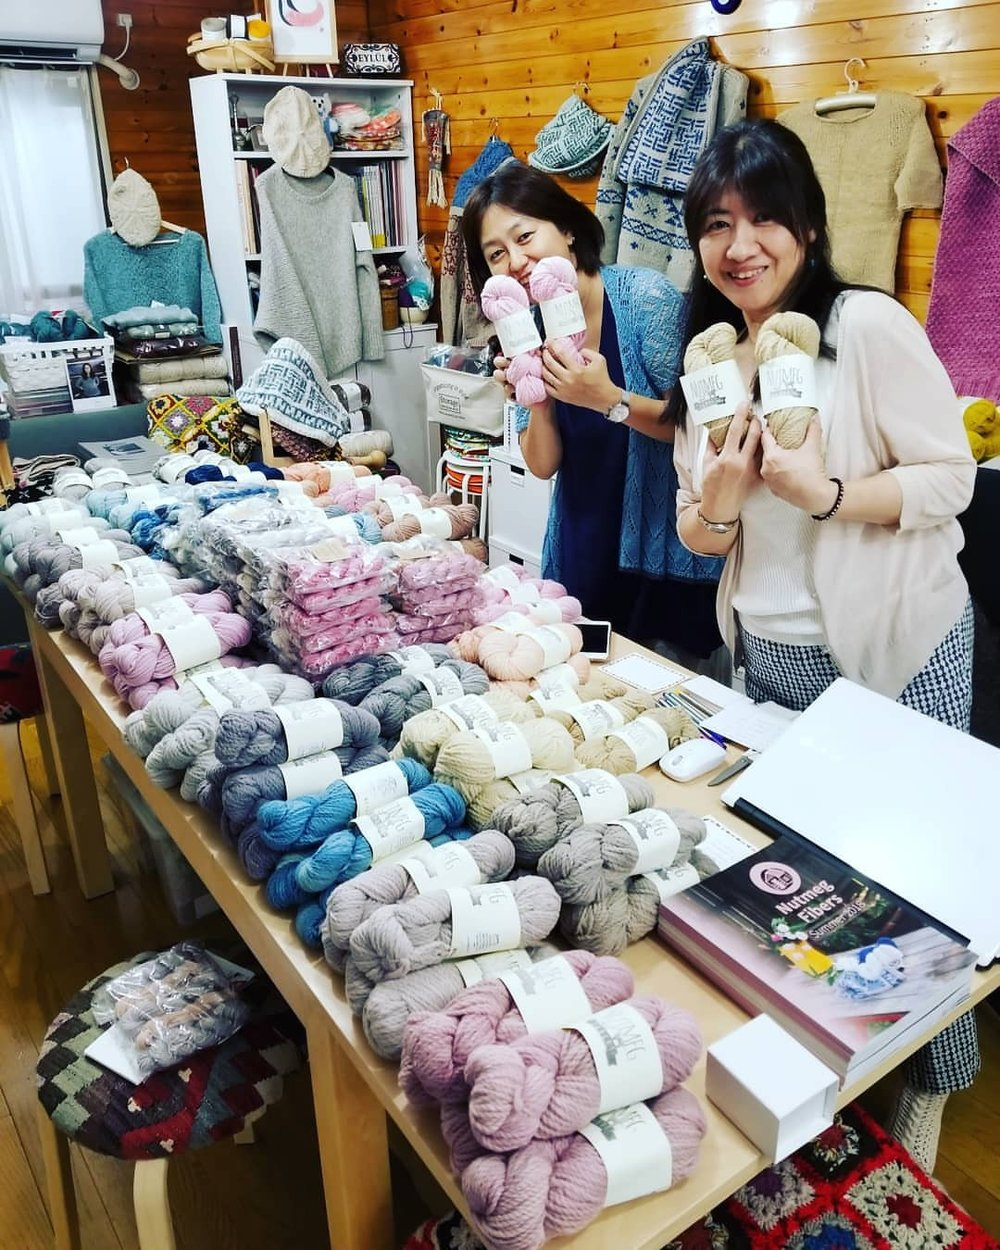 All set up for tomorrow's trunk show at @eylulkilim here in Osaka!!! We're all still a bit jetlagged, but so happy to be here! Can't wait to meet some new fiber friends tomorrow!! #nfsummer2018 #knittersofinstagram #worldwidefiberfriends #編み物 #osaka #손으로만들다 #手製の  (at Osaka)